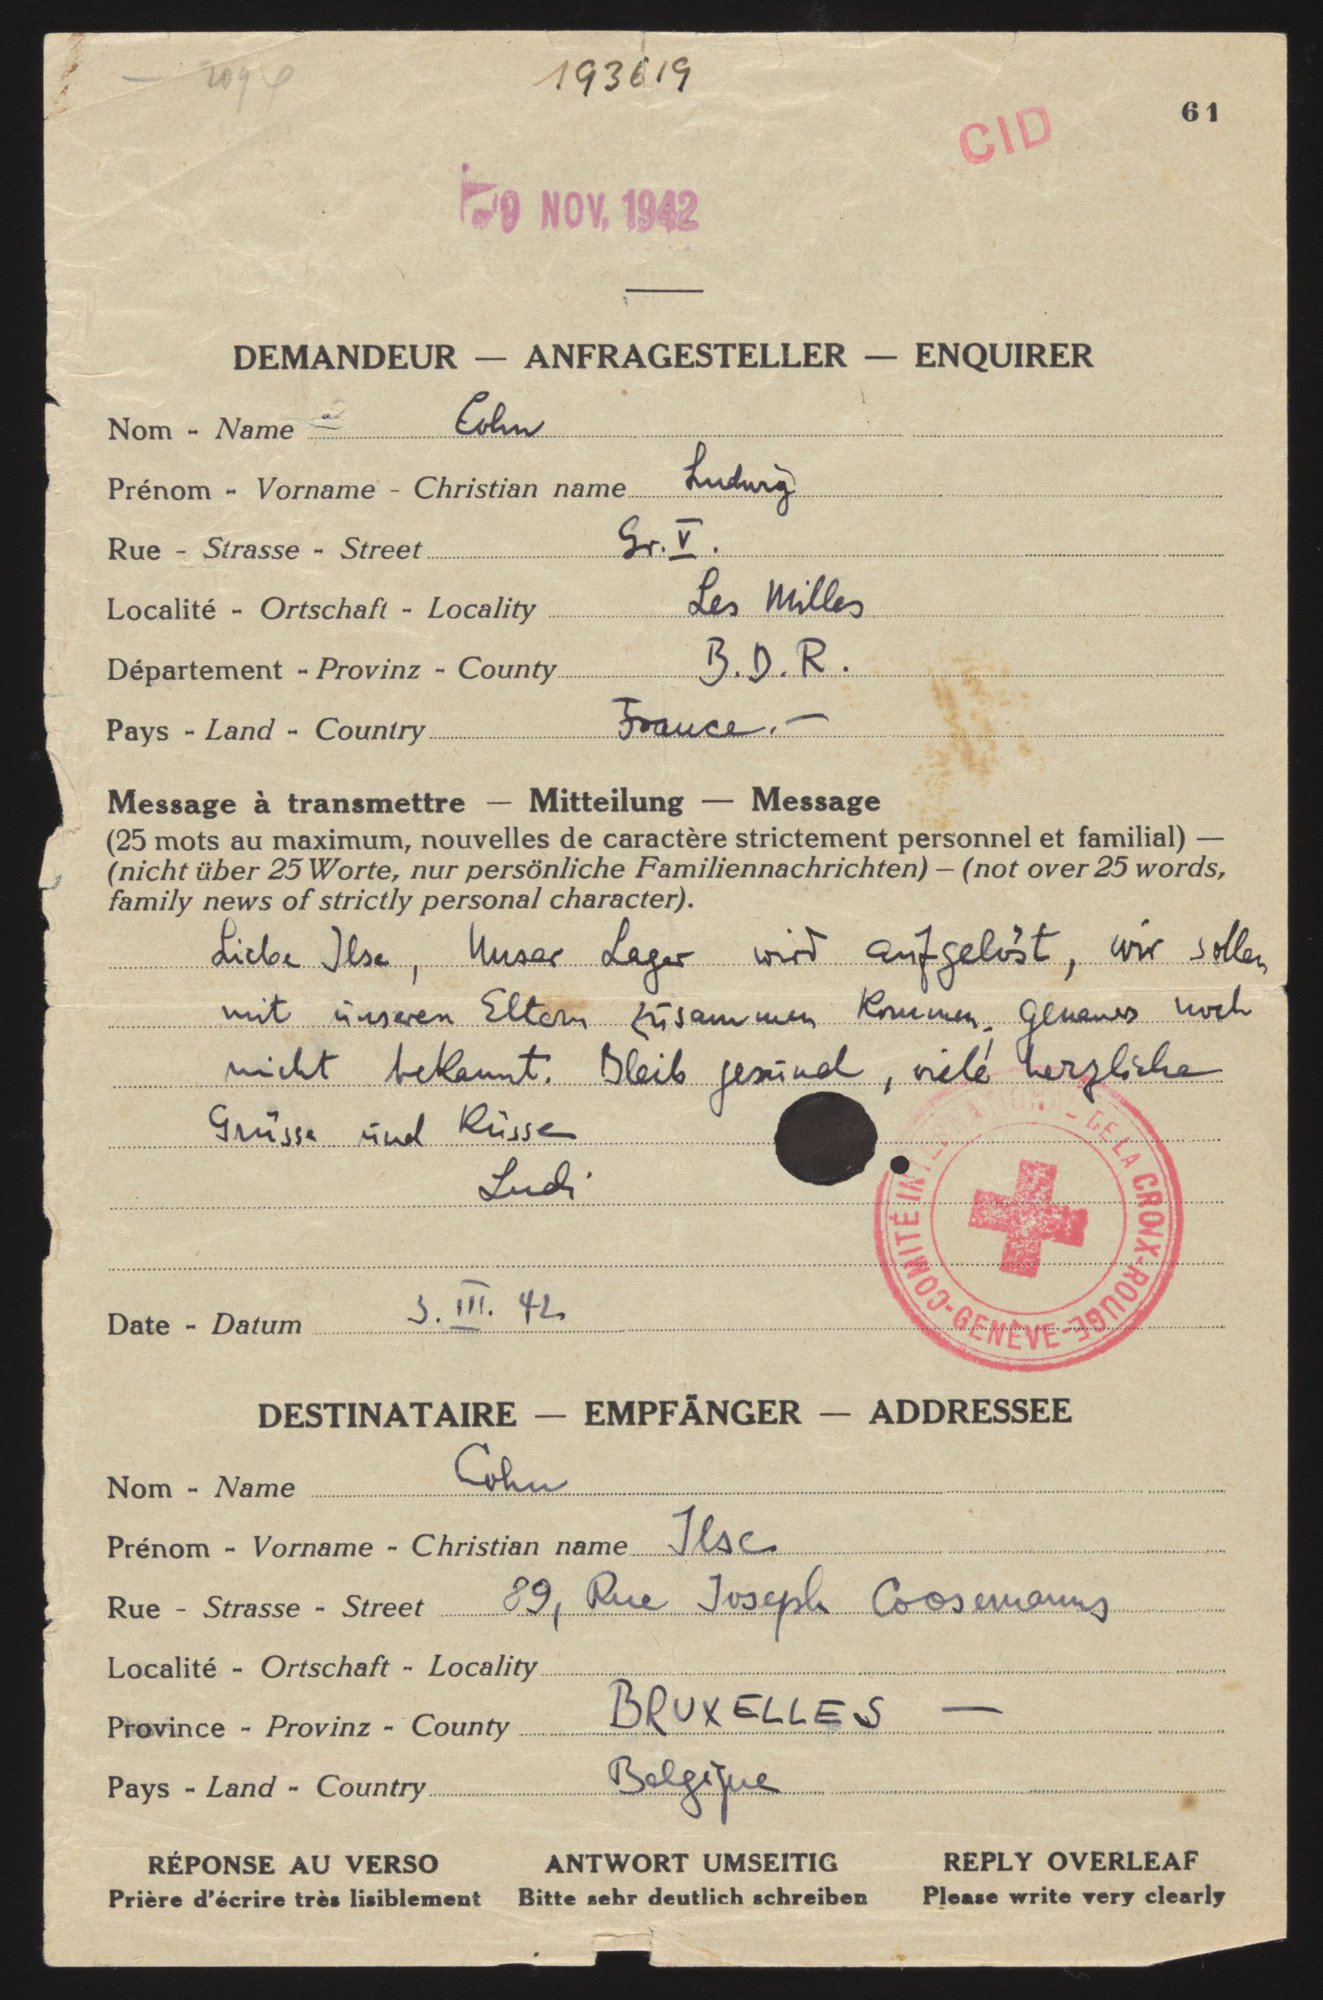 """Red Cross letter sent from Ludwig Cohn, a Jewish prisoner in the Les Milles internment camp, to his sister Ilse Cohn in Brussels, Belgium.  The letter reads: """"Our camp is being dissolved.  We should be able to meet up with our parents.  More exact information is not yet known.  Stay safe and healthy.  Many heartfelt greetings and kisses. Ludi."""""""